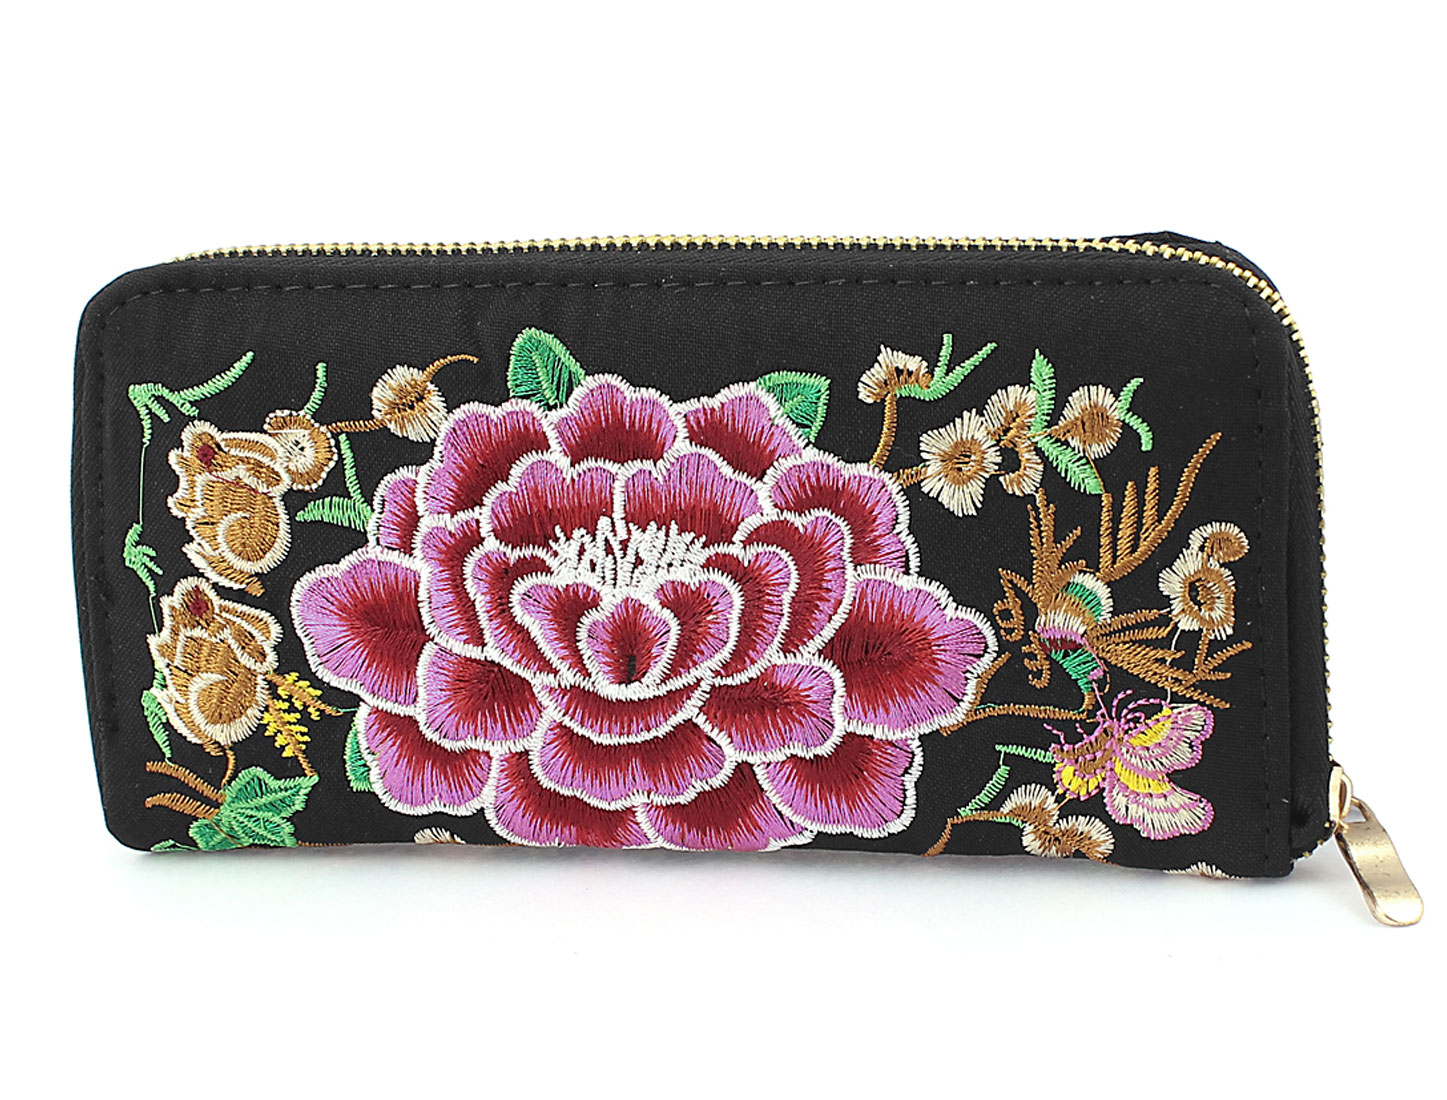 Embroidered Flowers Design Women Handbag Purse Coin Change Wallet Bag